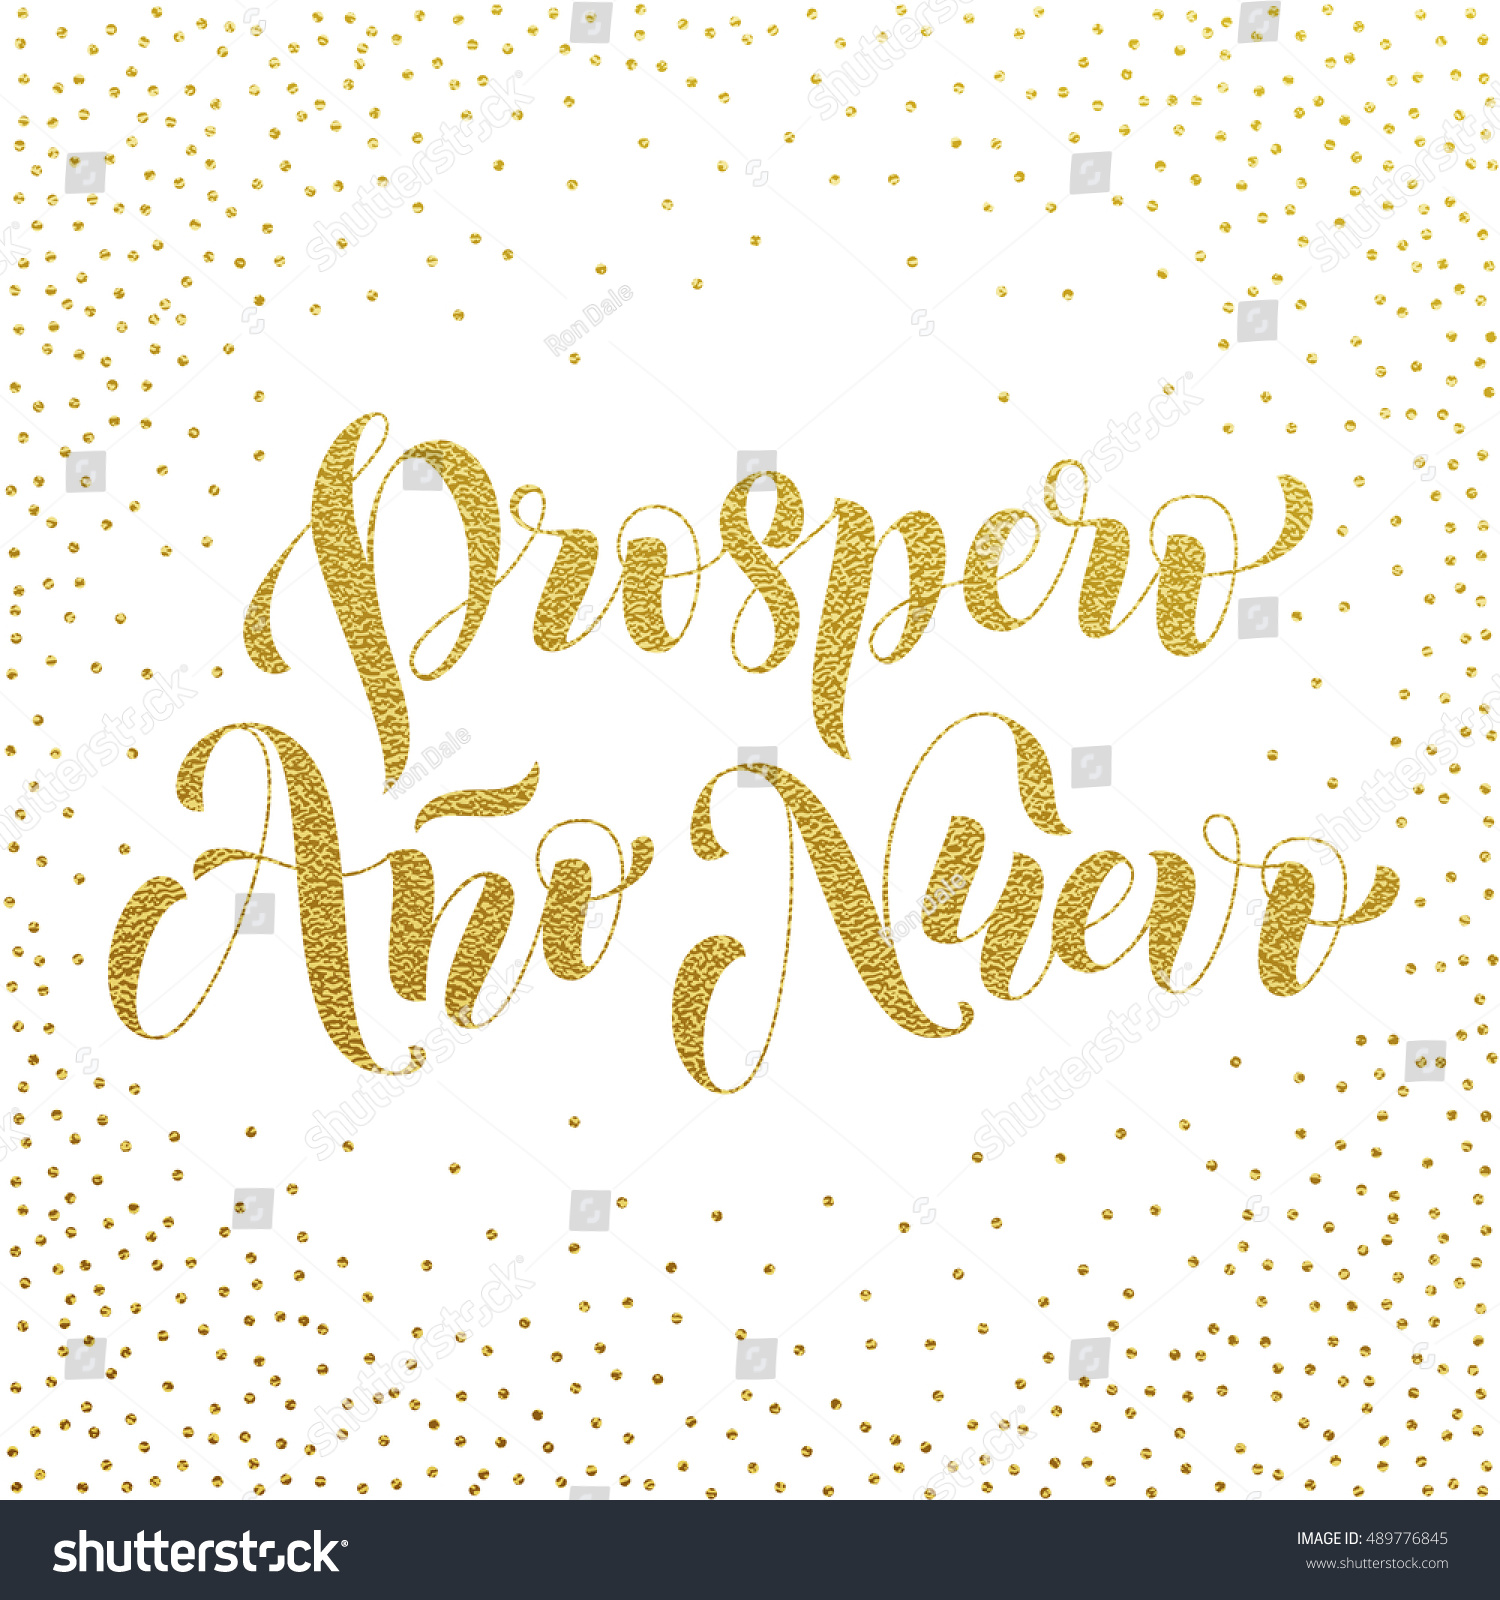 Prospero ano nuevo gold glitter modern stock vector 489776845 prospero ano nuevo gold glitter modern lettering for spanish happy new year greeting holiday card kristyandbryce Images